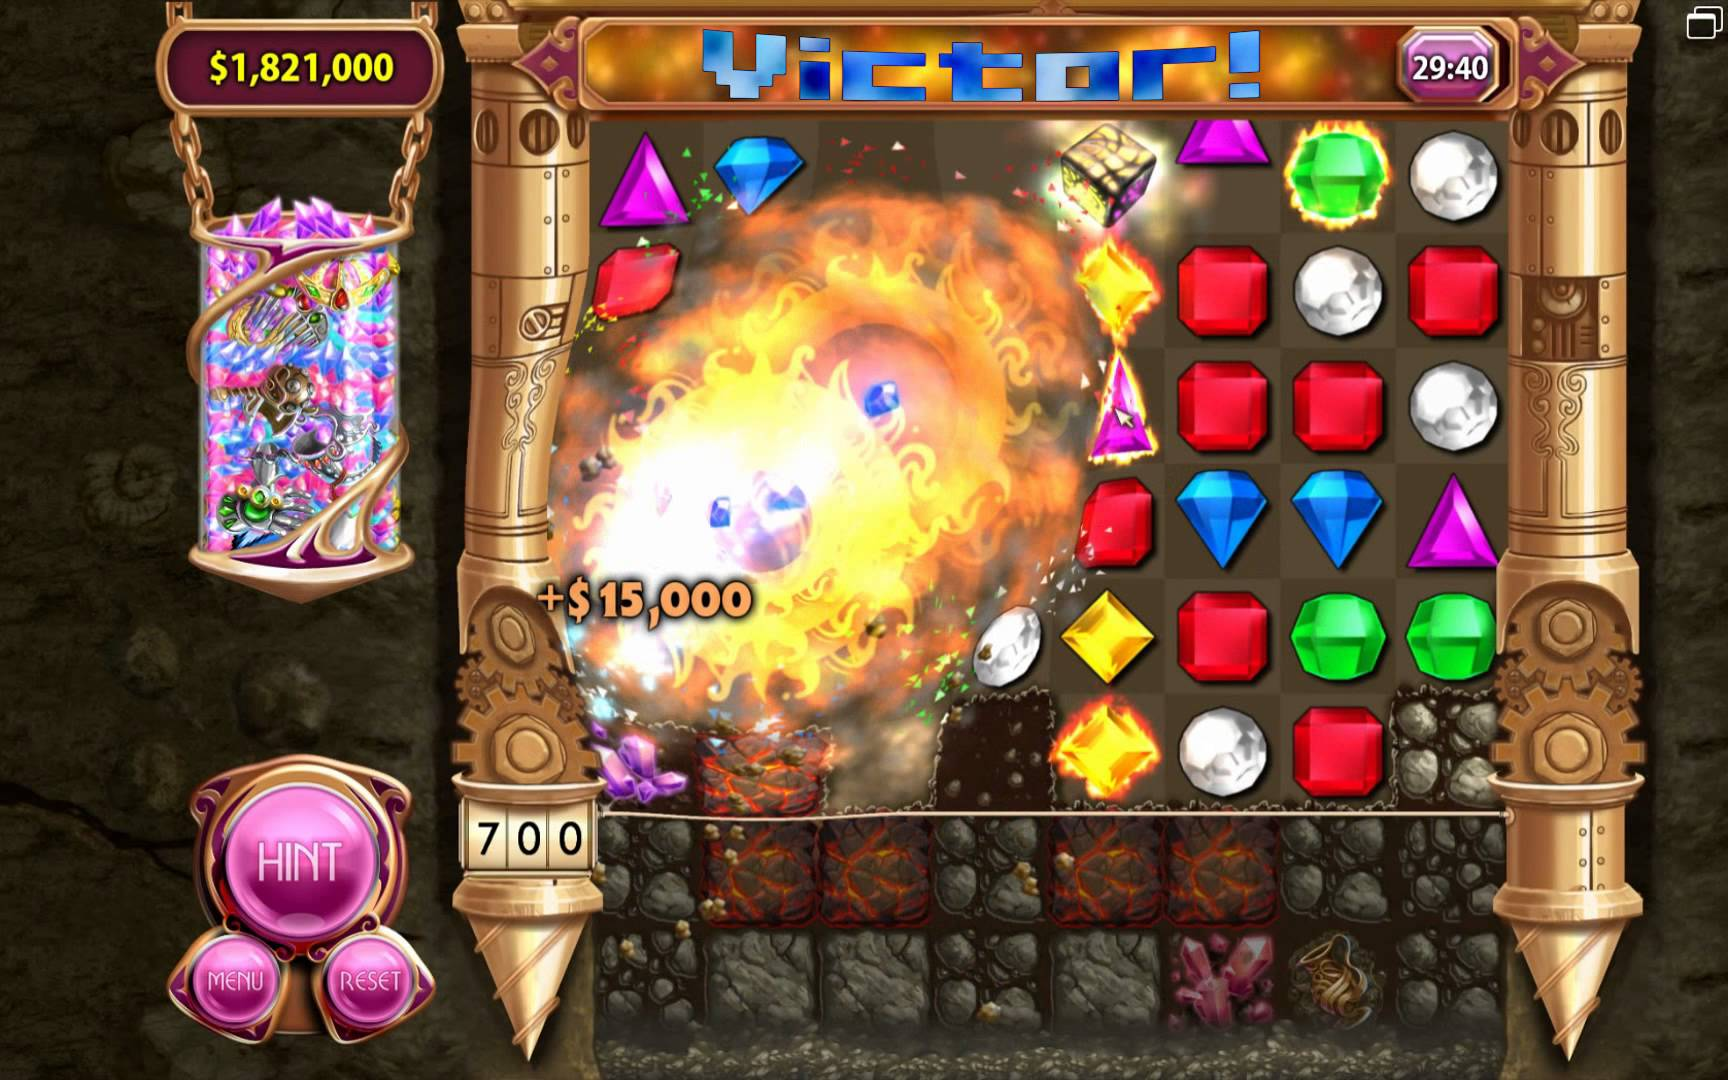 Bejeweled 3 has stunning new graphics and new modes to explore including ticking time bombs